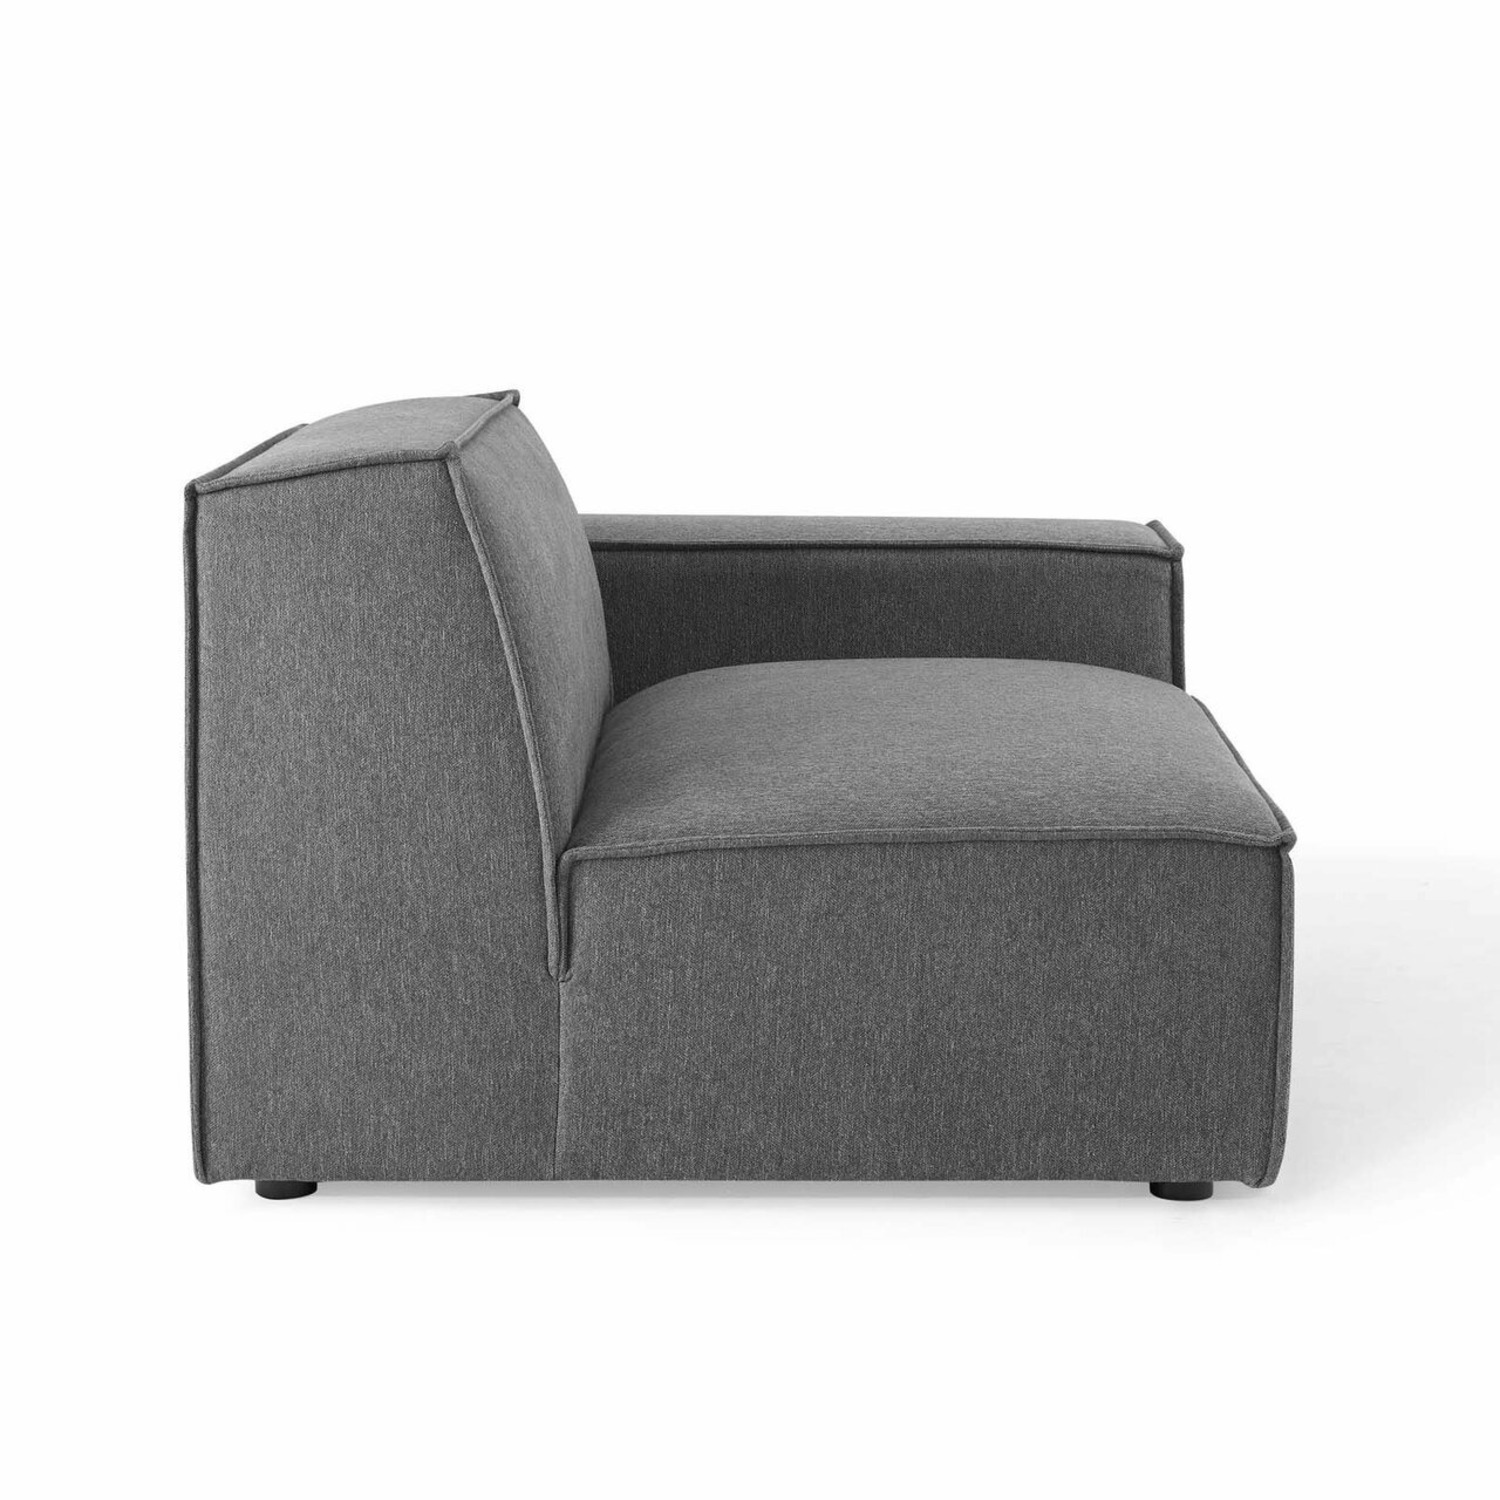 7-Piece Sectional Sofa In Charcoal Upholstery - image-3